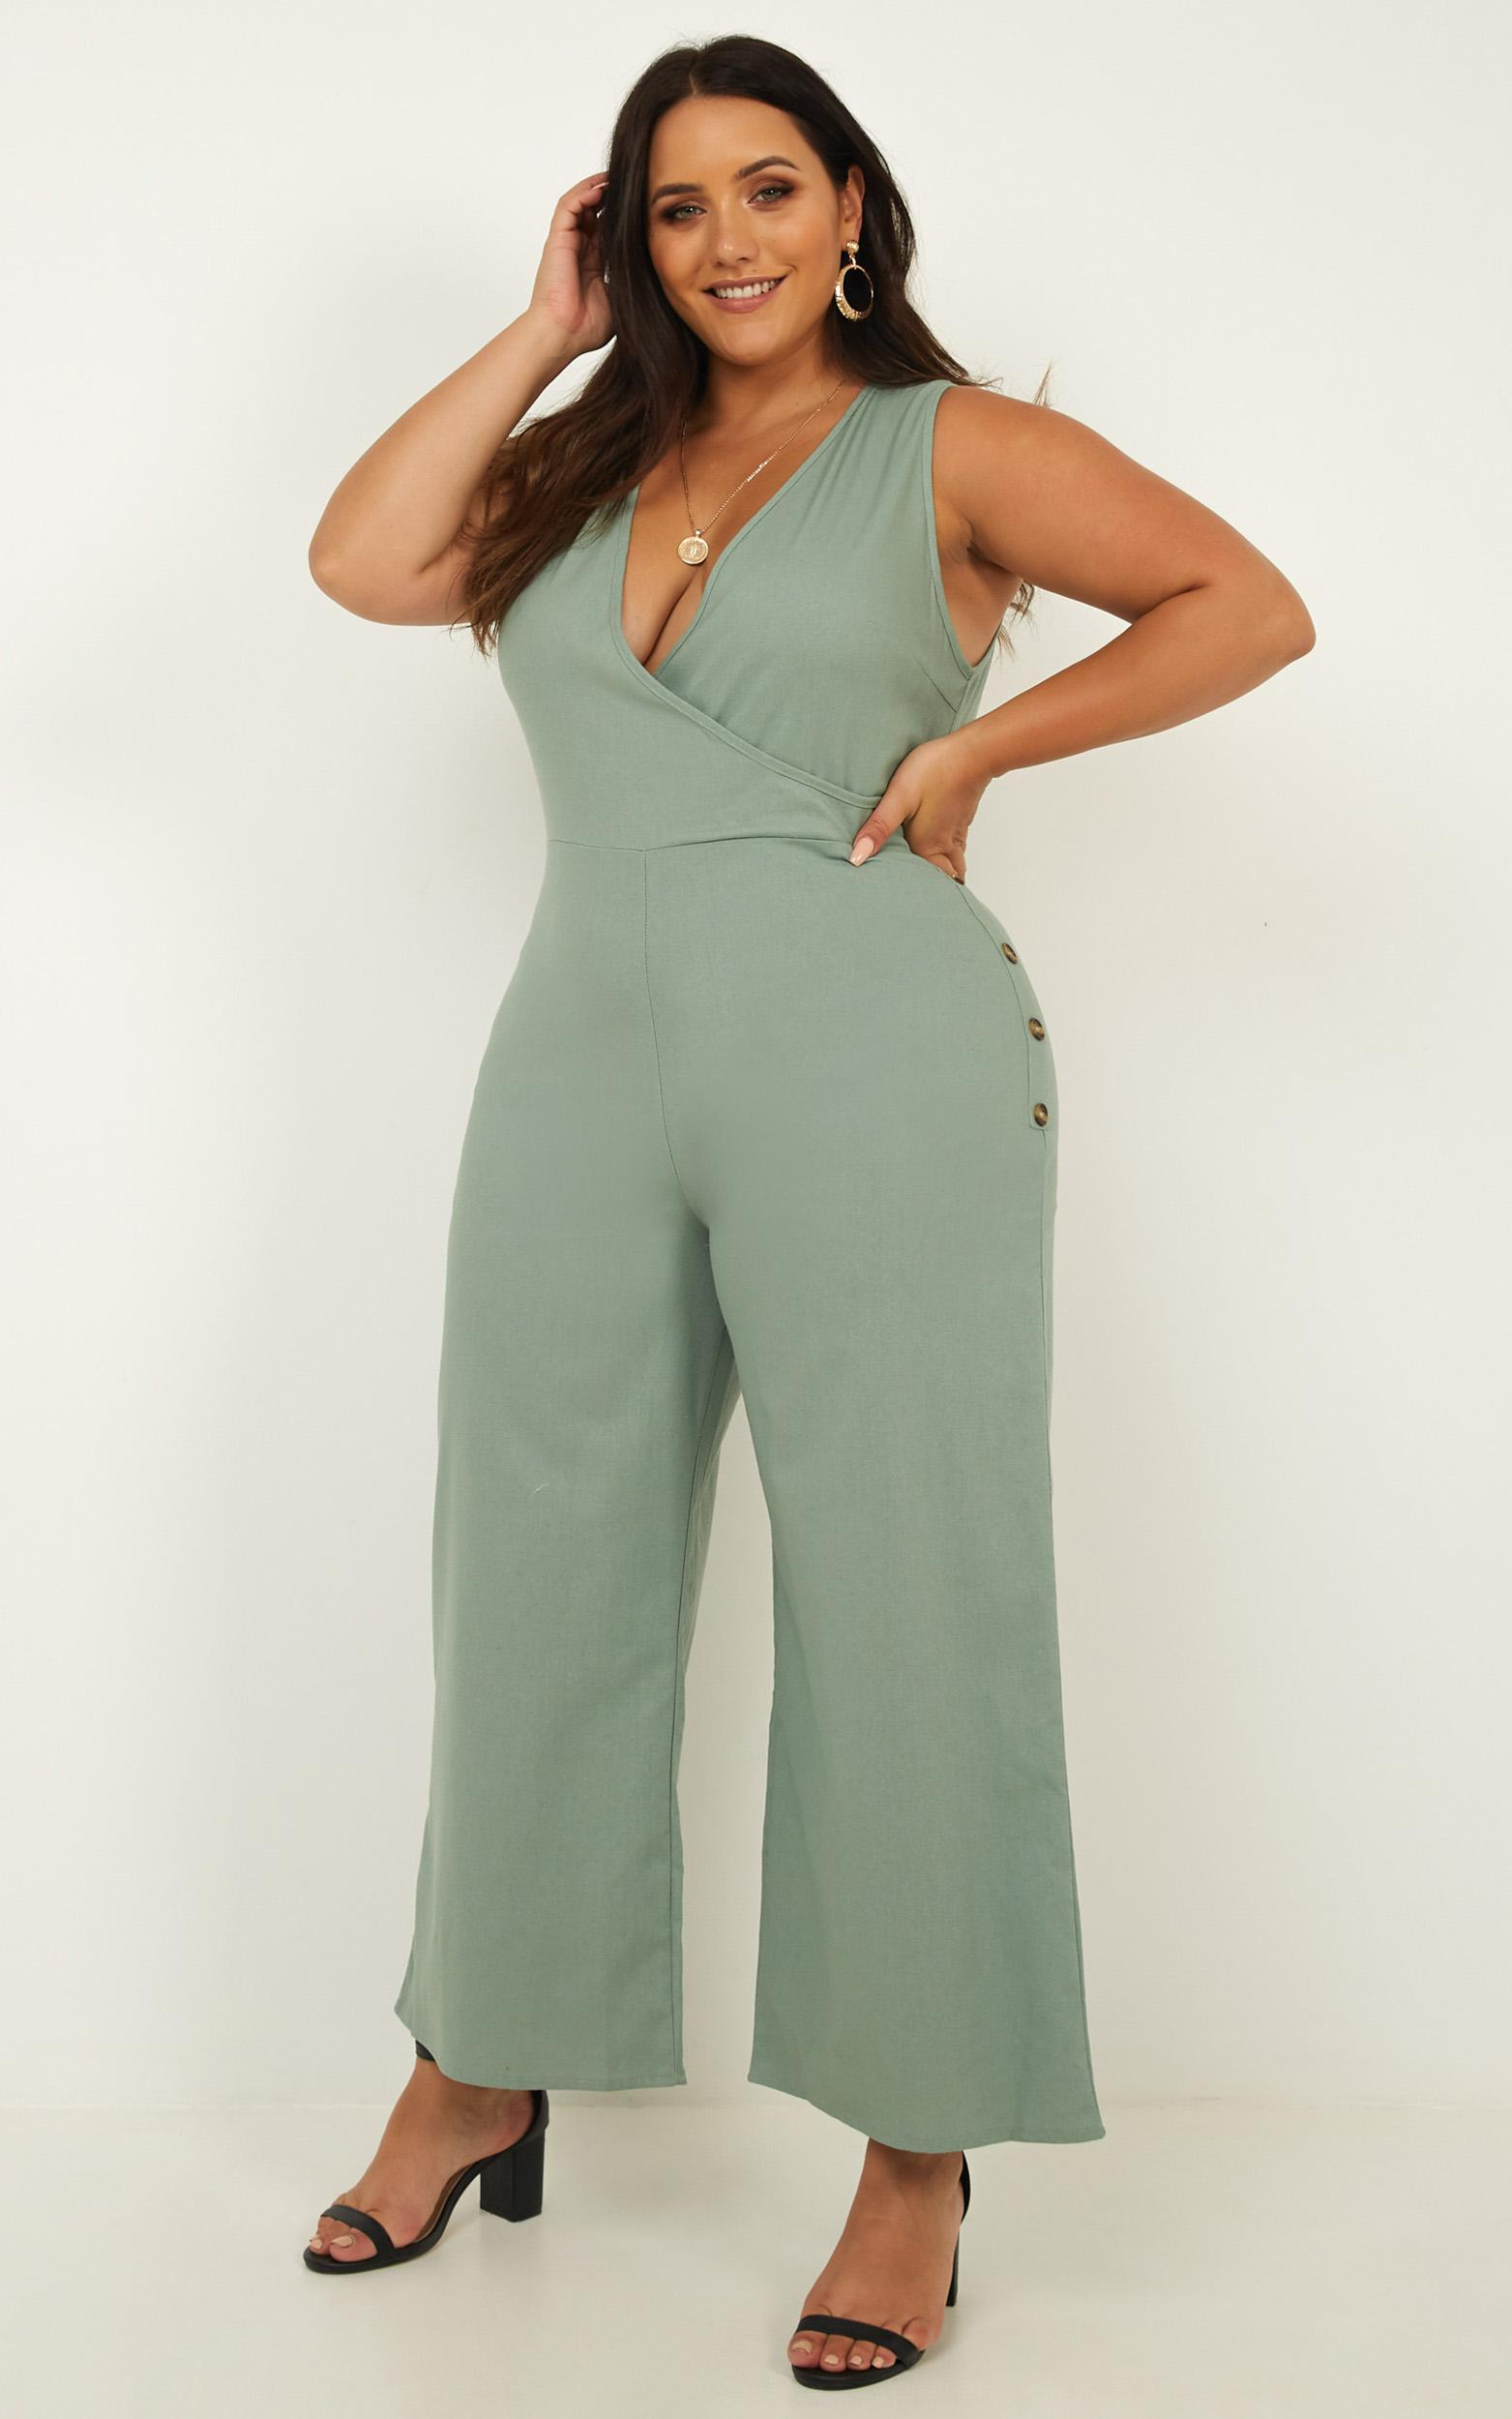 Clear as Crystal Jumpsuit in sage linen look - 20 (XXXXL), Sage, hi-res image number null